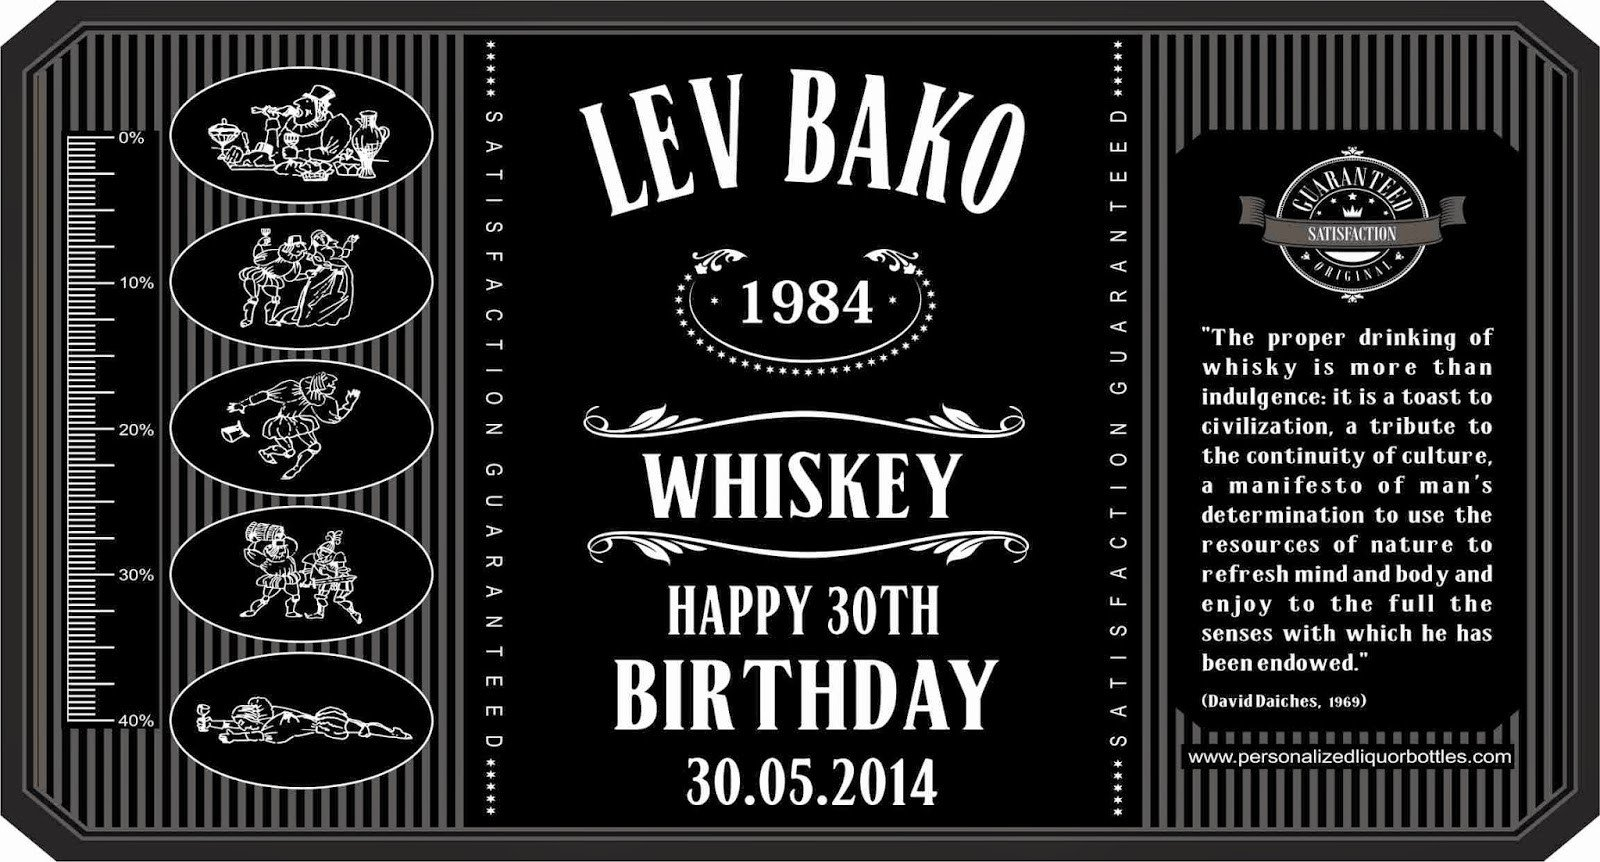 Liquor Bottle Labels Template Personalized Liquor Bottles Personalized Whiskey Bottles